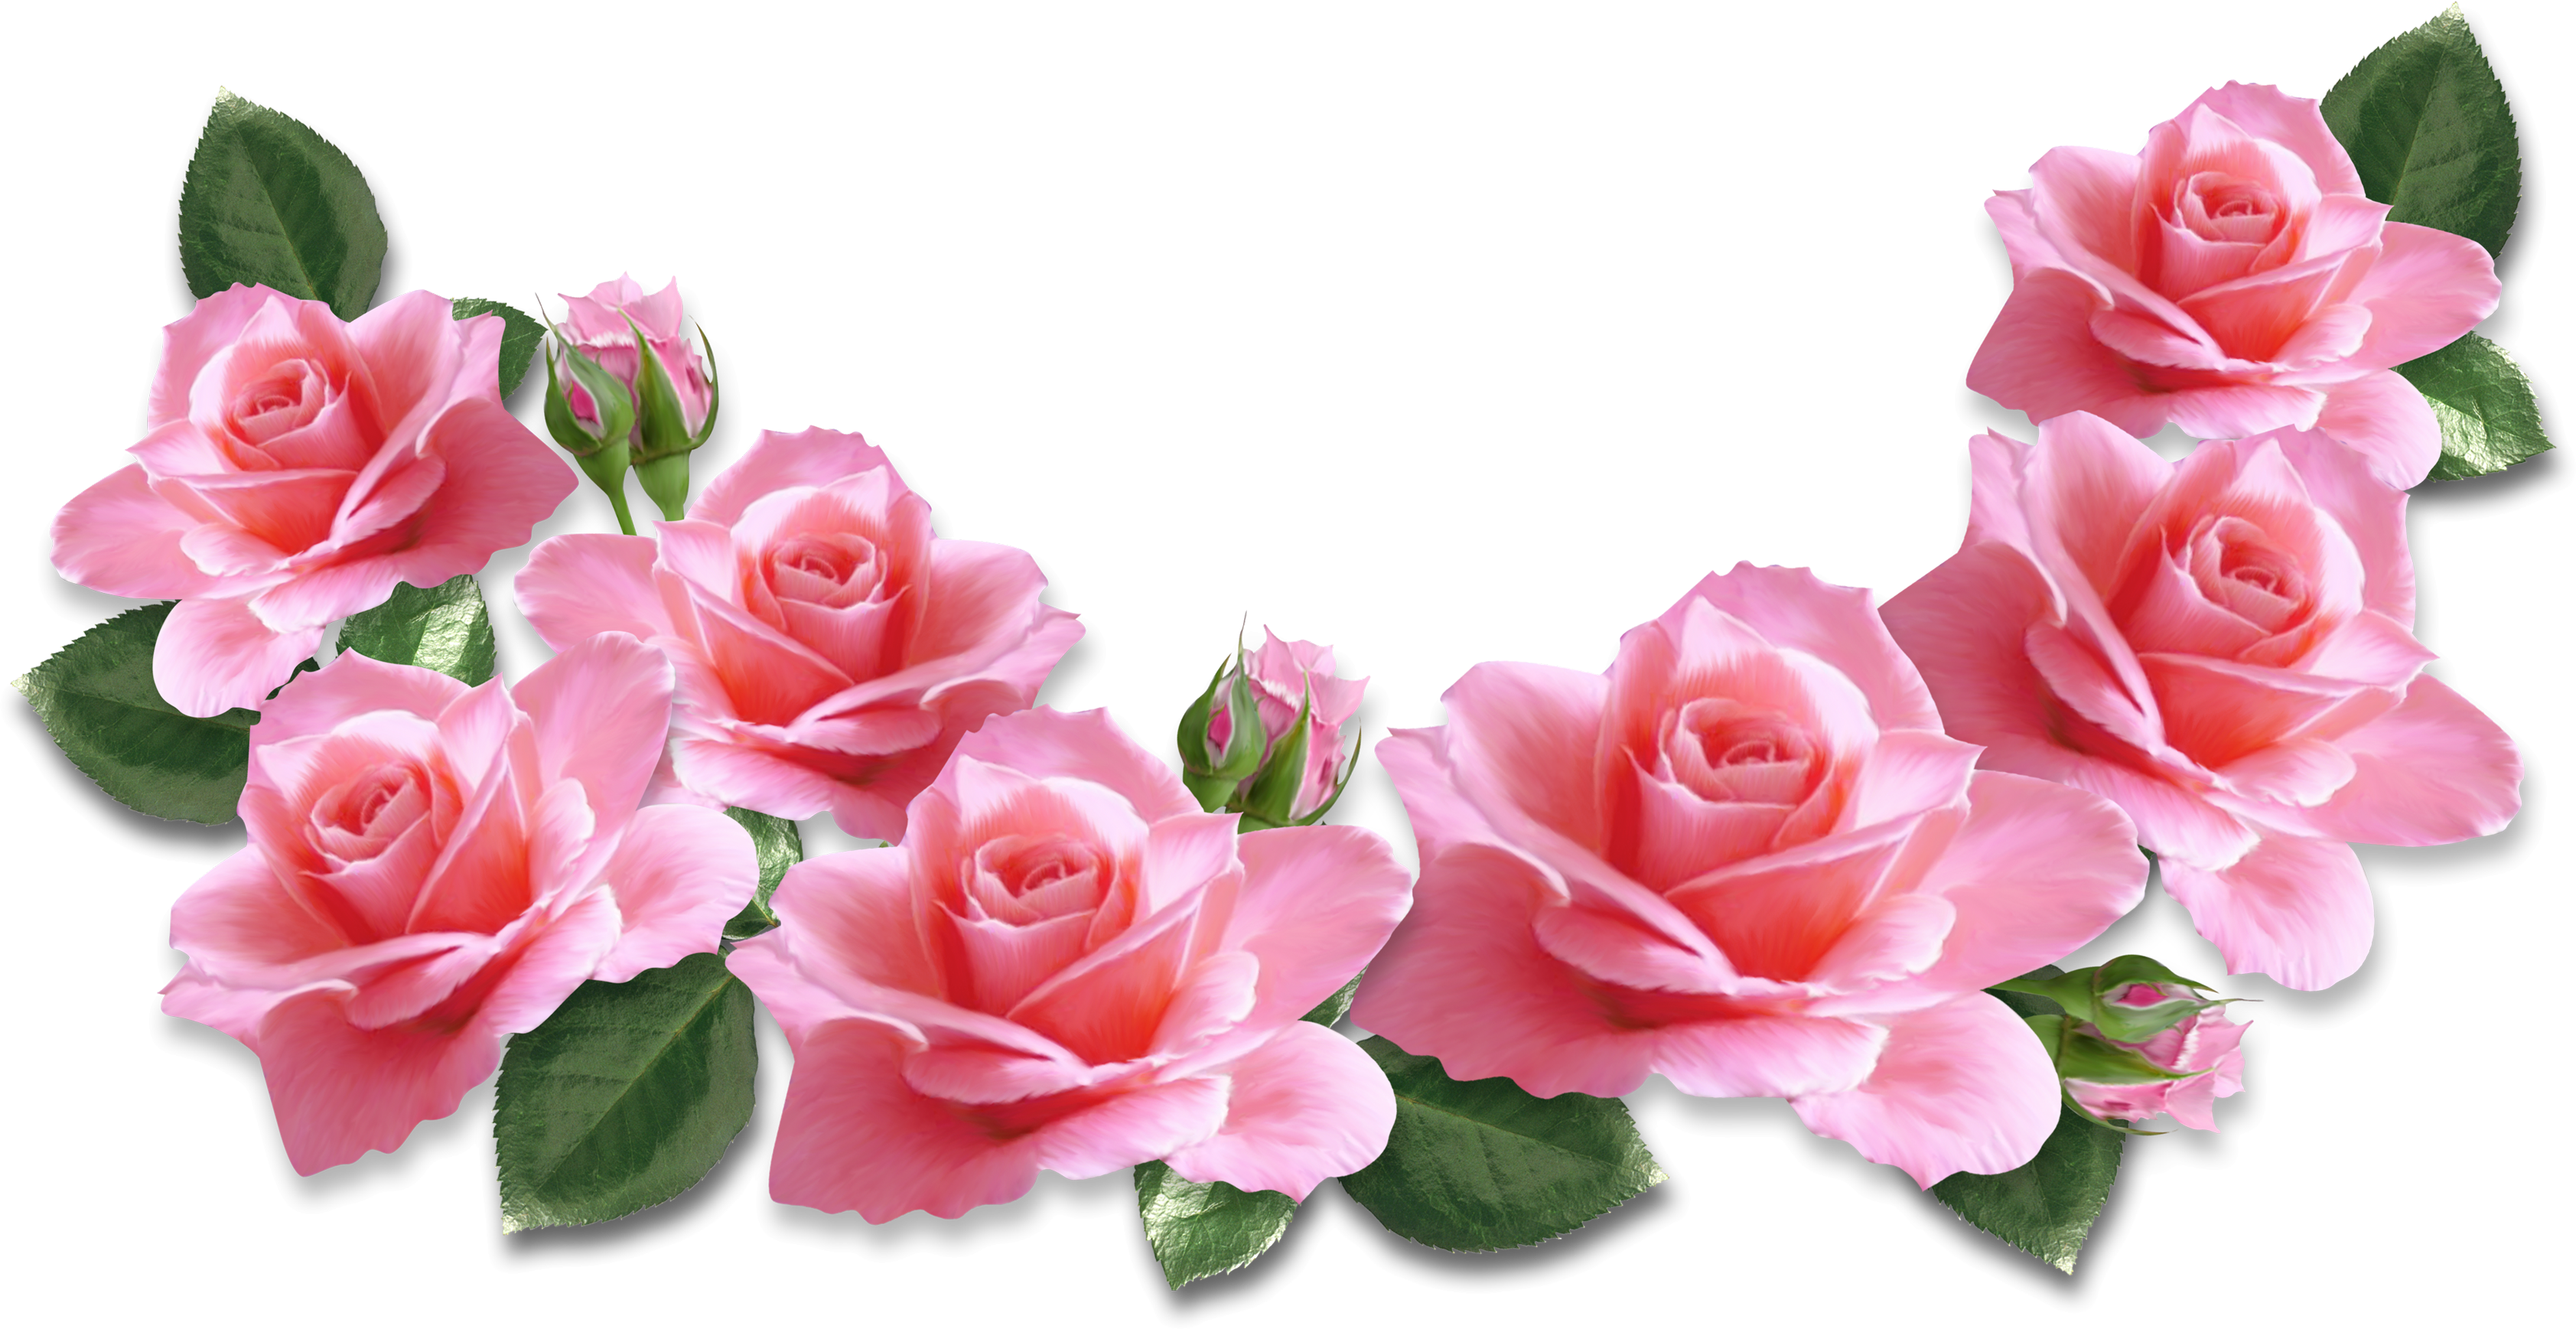 Rosas png. Pink roses decoration clipart